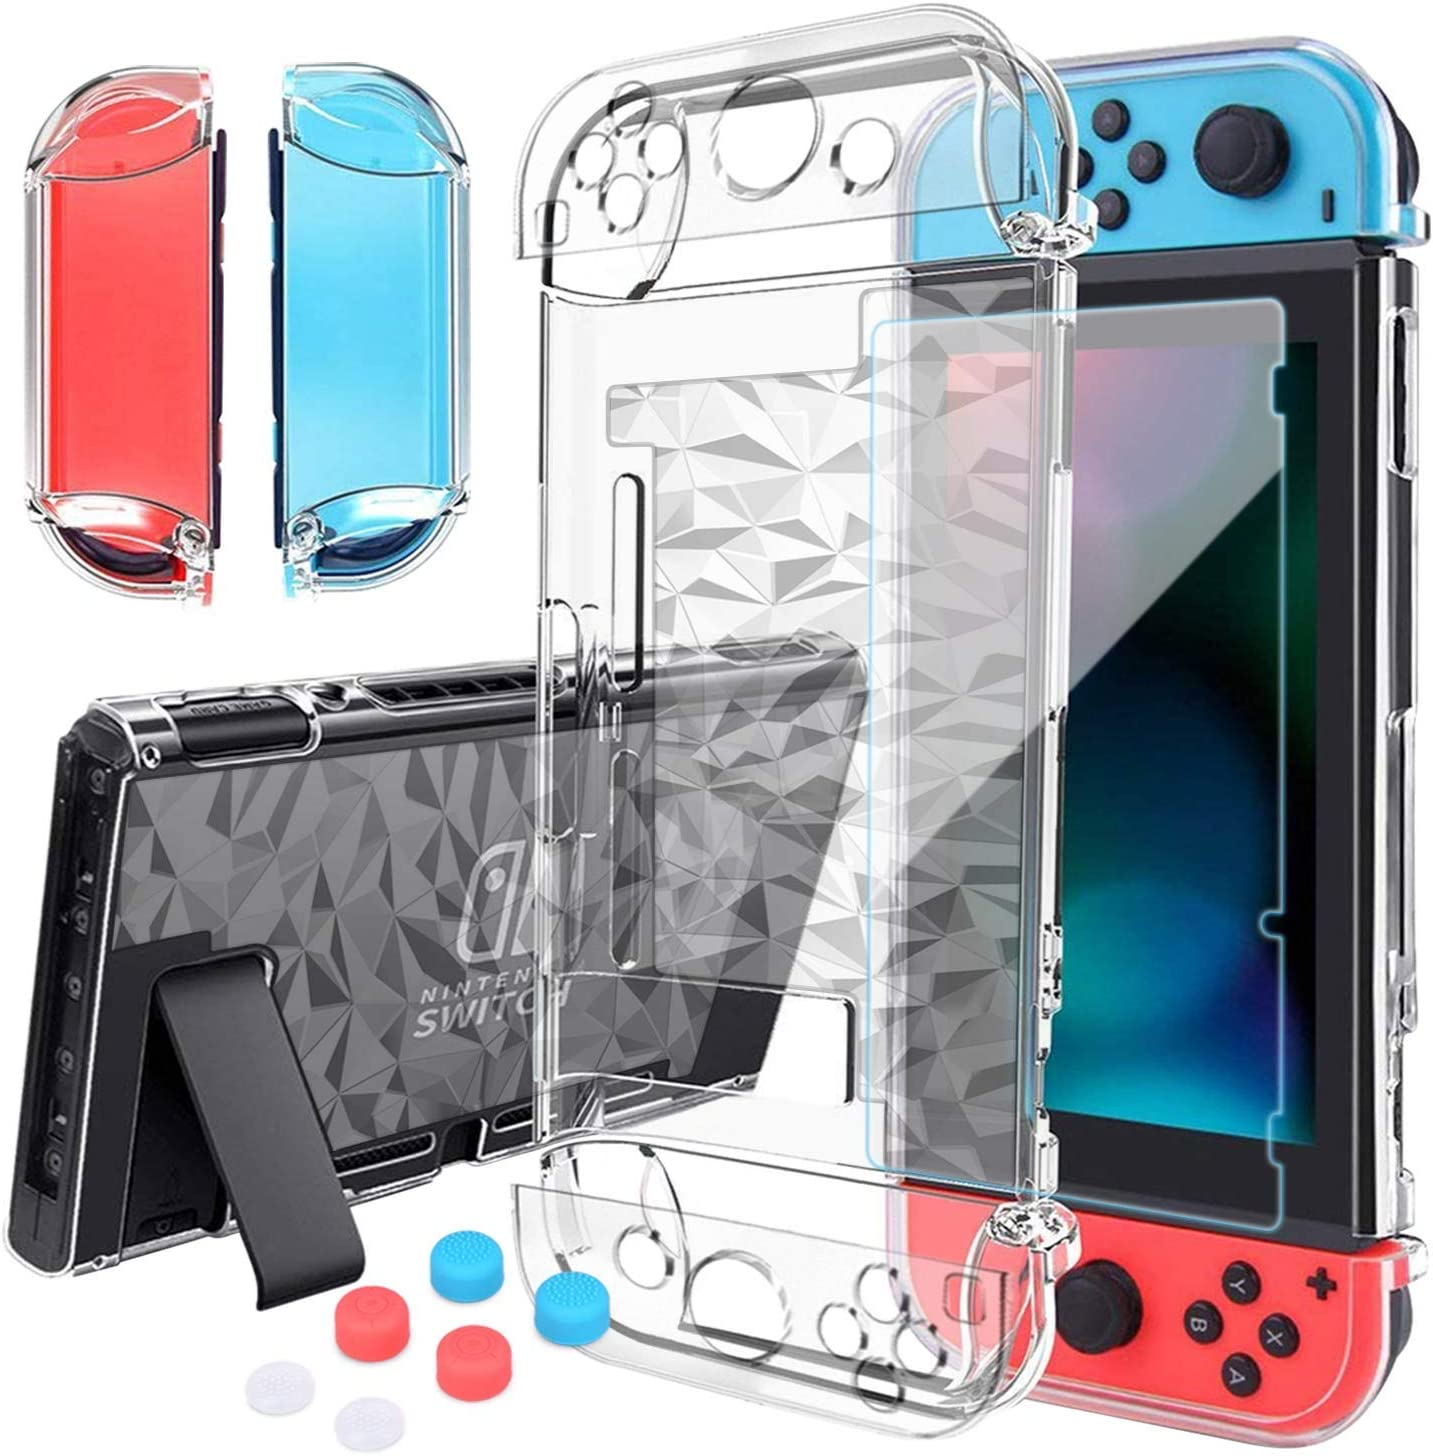 HEYSTOP Switch Case for Nintendo Switch Case Dockable with Screen Protector, Protective Case Cover for Nintendo Switch Tempered Glass Screen Protector and 6Pcs Thumb Caps